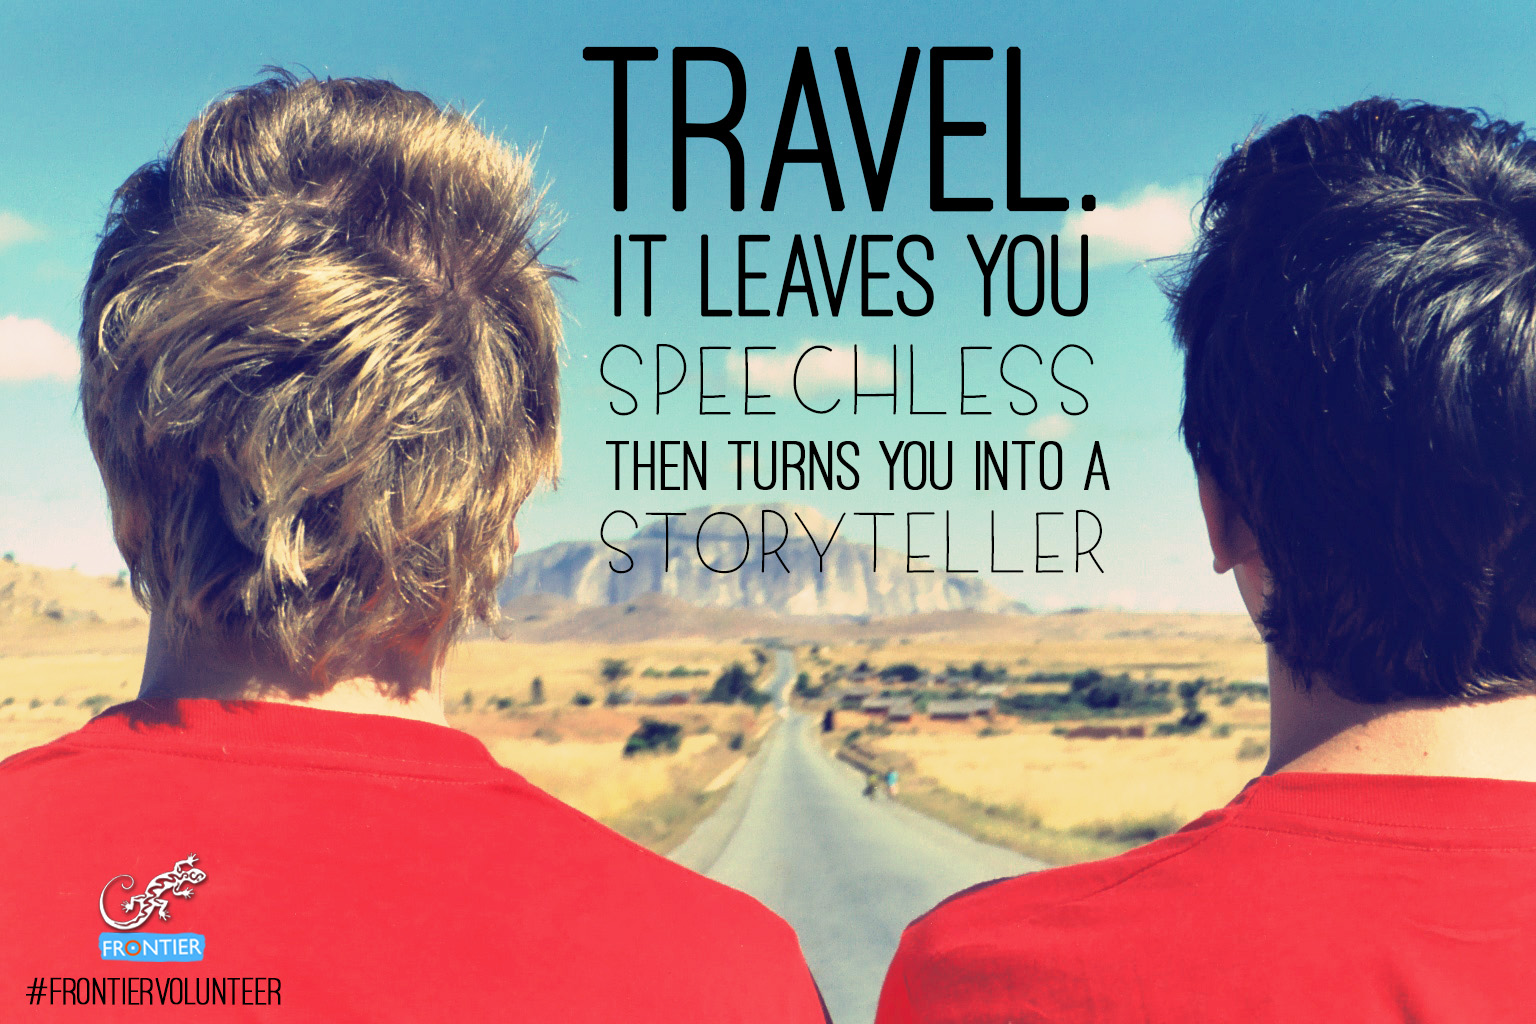 Quotes On Volunteering 10 Best Inspirational Travel And Volunteering Quotes